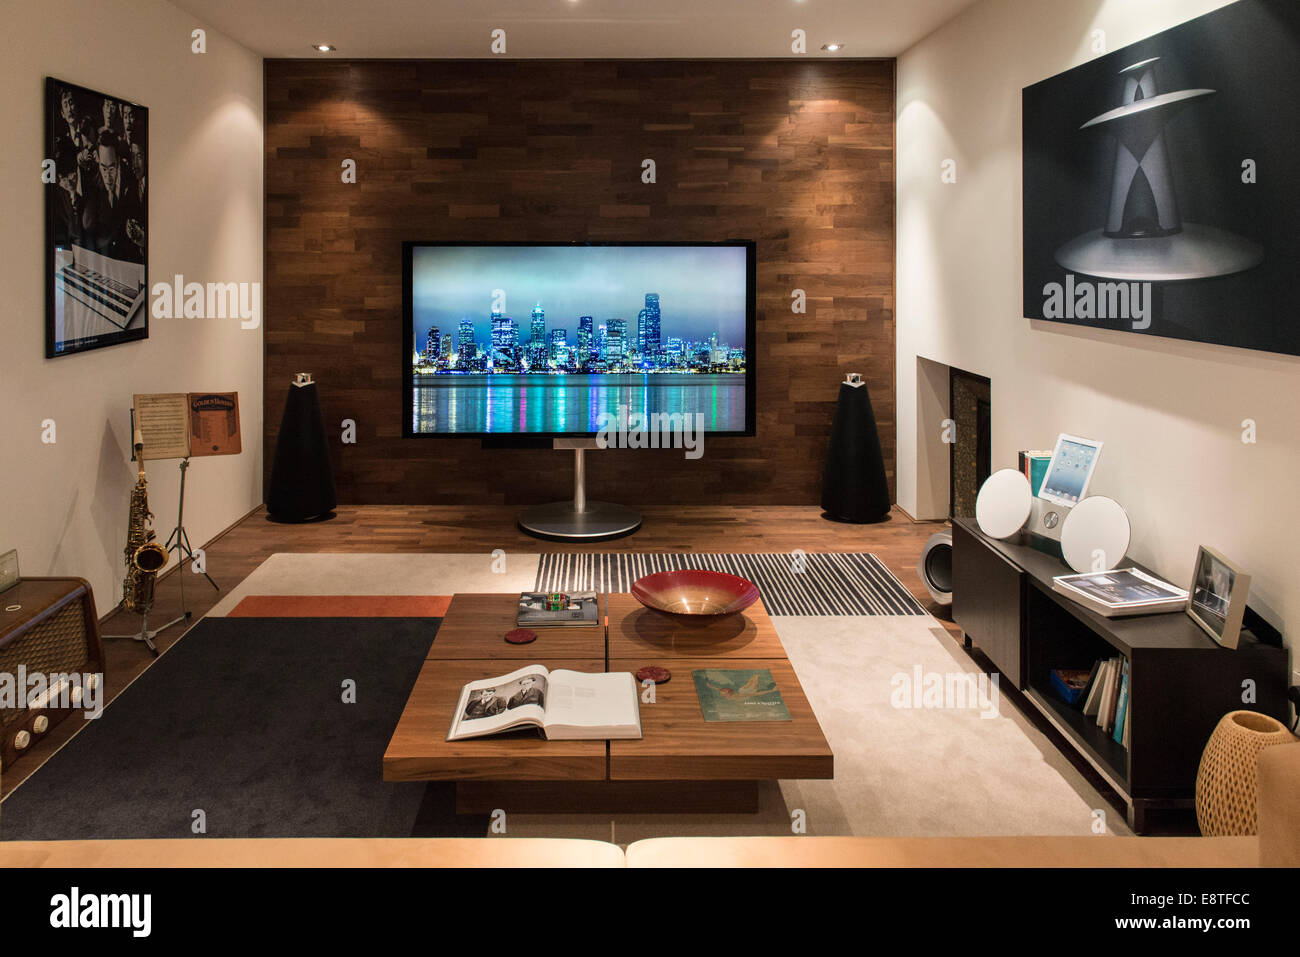 Stock Photo   Listening Room At A High End Hi Fi, Music Sound System  Technology Store All Laid Out To Be A Show Living Room With Giant TV